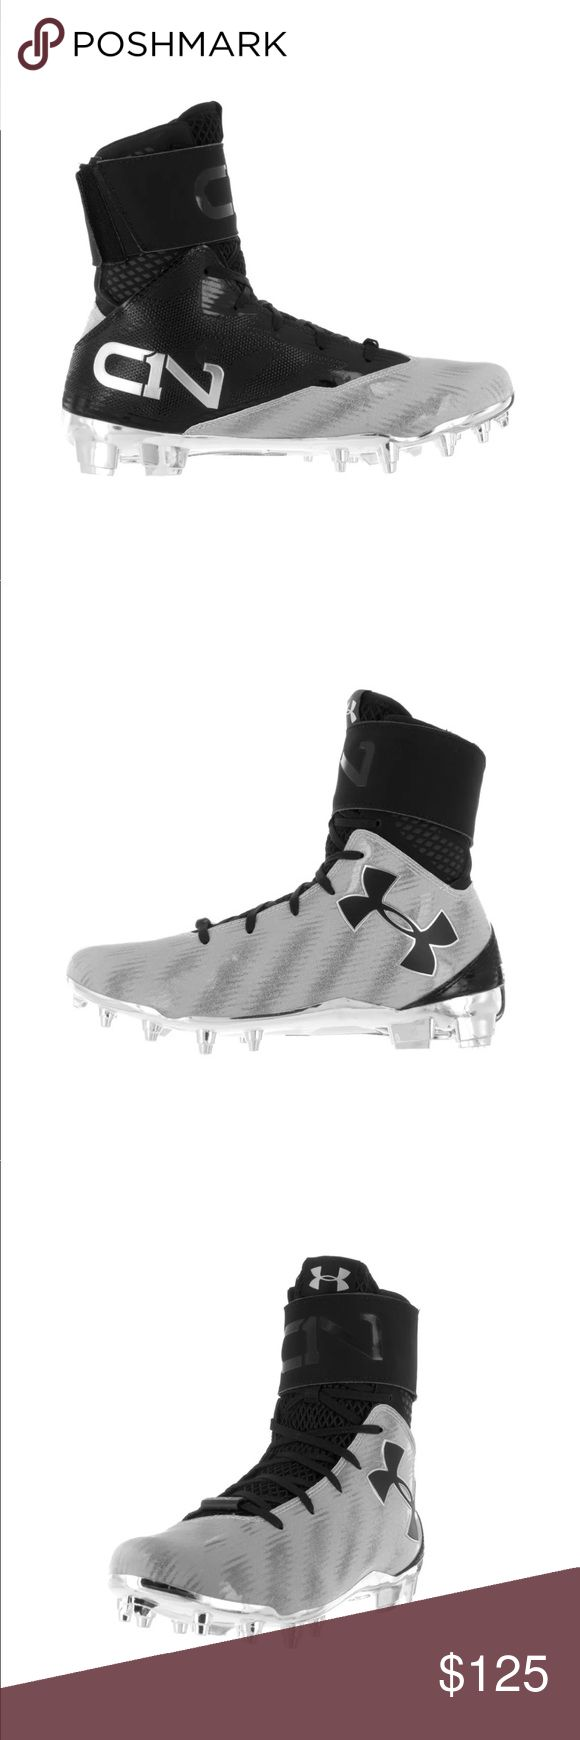 Men's Under Armour C1N Cam Newton Football Cleats - Brand New, Just Without The Box! Super-High. Impossible to stop. Built for Cam Newton, the QB of the future. - UPPER: Icy Diamond synthetic offers durability in a sleek, go-fast design - Removable strap for extra support when you want it - Customizable sticker pack included. - MIDSOLE: Molded 4D Foam, UA's proprietary footbed forms to your foot providing optimal comfort and reduces cleat pressure. - OUTSOLE: Chromed-out Pebax cleat plate…